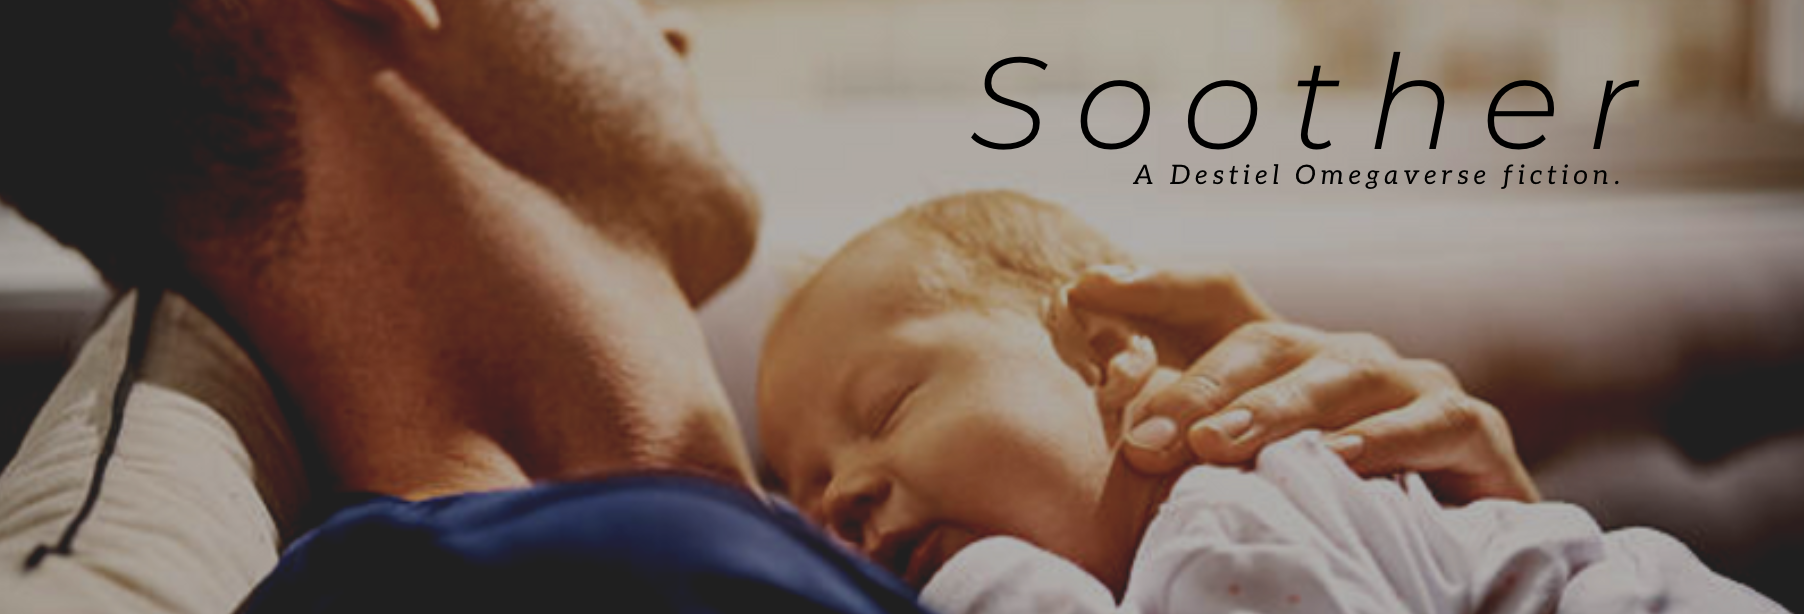 Soother-NadiaHart-Banner